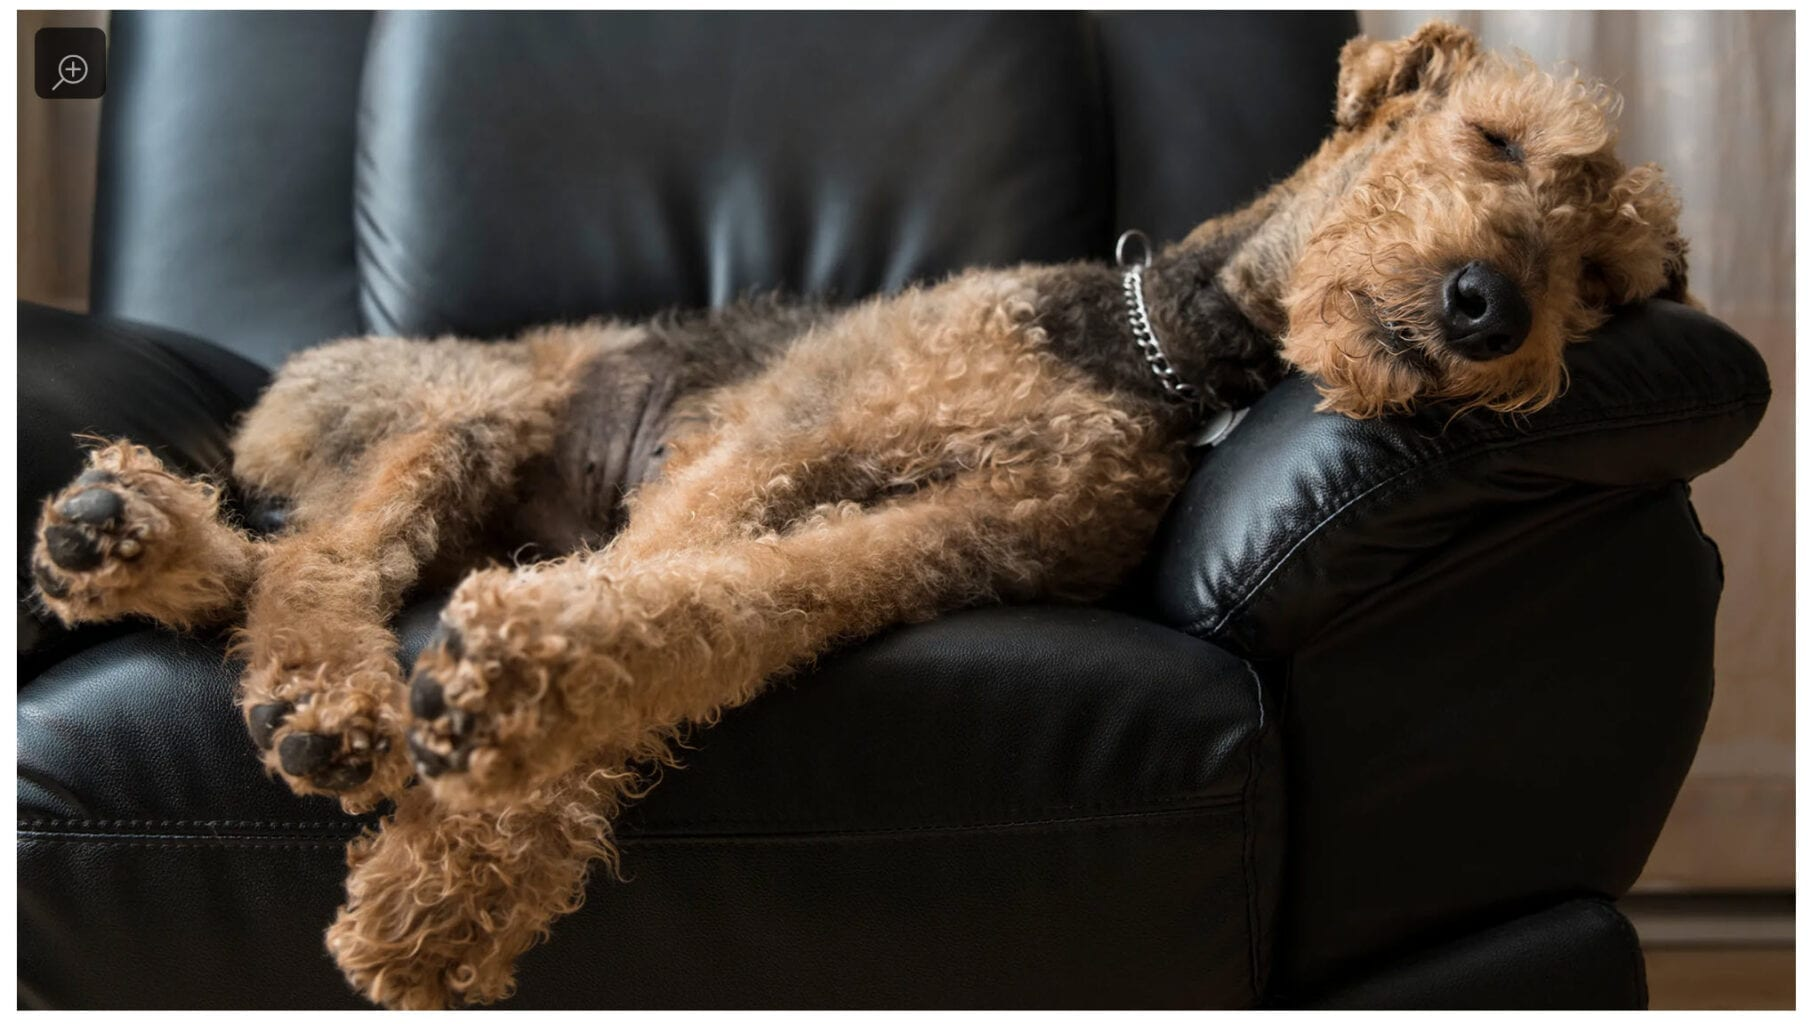 Funny (and not true) Study Finds Dogs Twitching In Sleep Are Dreaming About Tearing Owners Limb From Limb – [News: Dreaming]